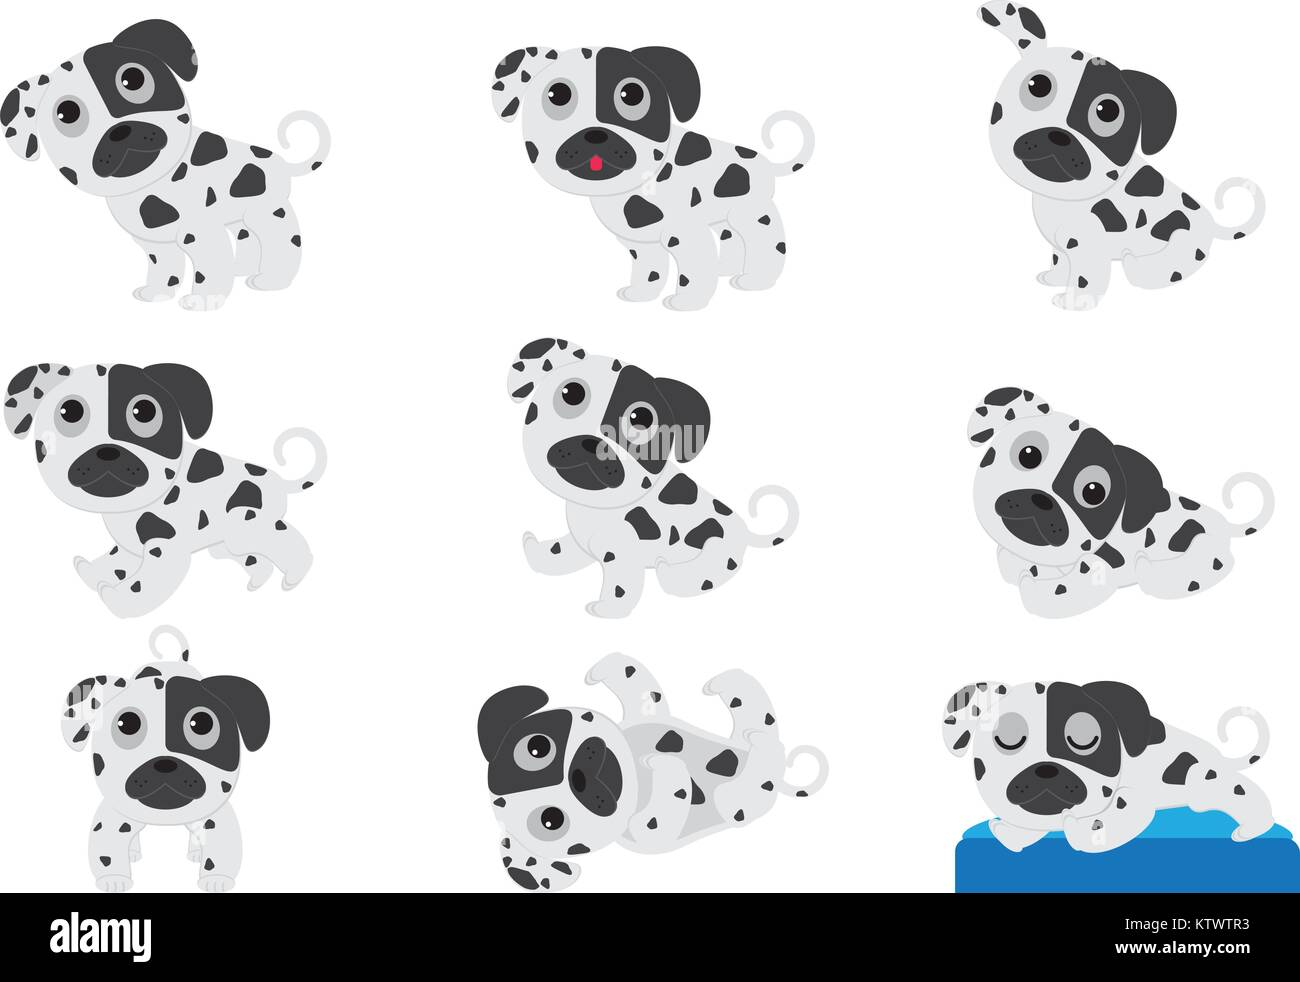 White Spotted Boxer Puppies Wiring Diagrams Viair Manufacturer Price Shipping 90111 Pressure Switch Cartoon Dalmatian Stock Photos Brown And Miniature